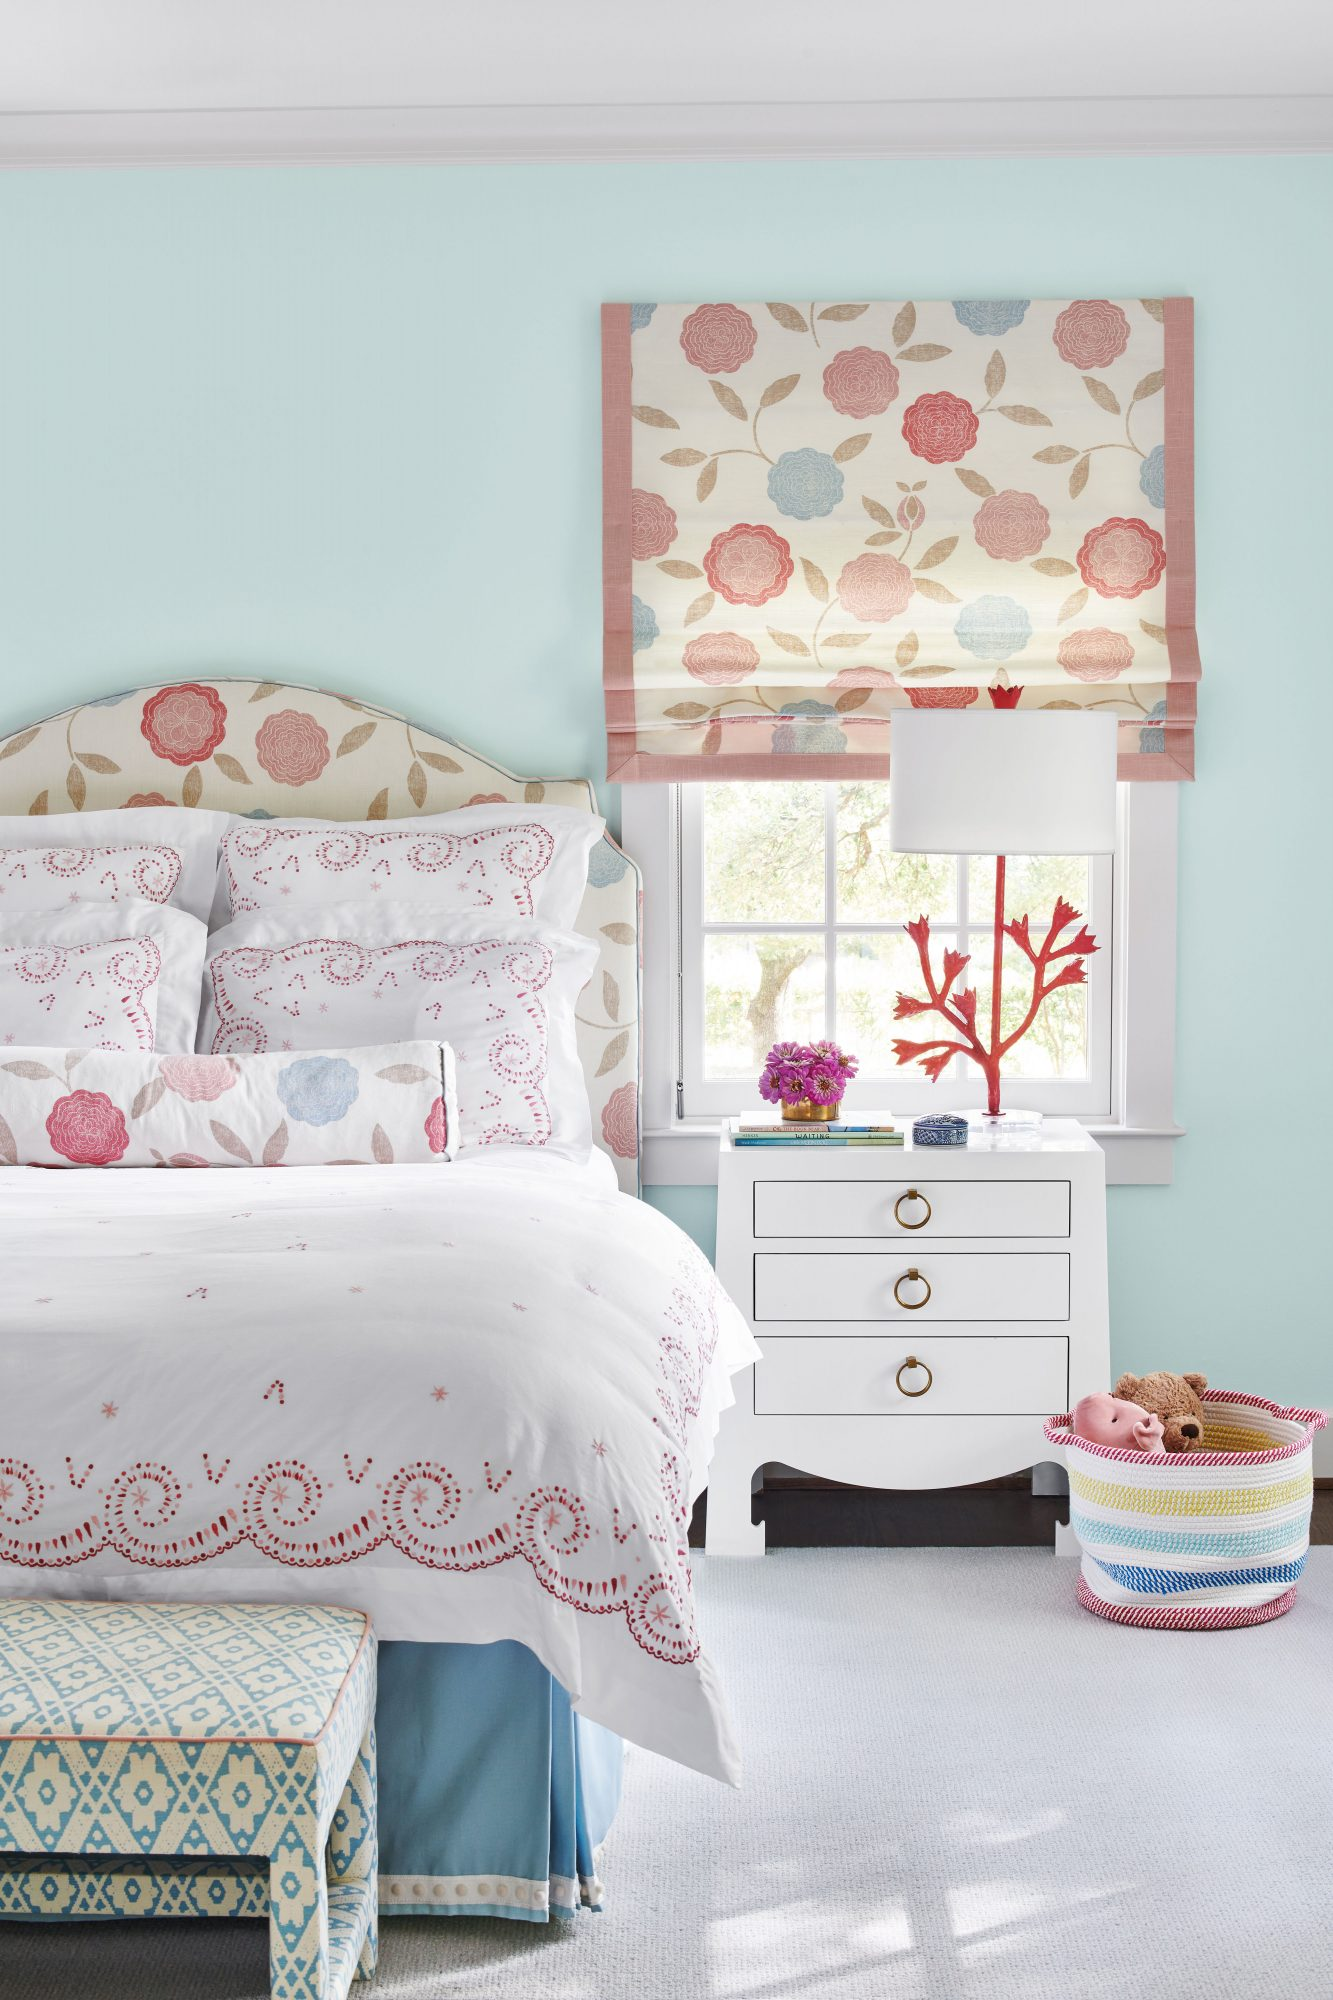 Girls bedroom with light blue walls and pops of pink in accent fabrics